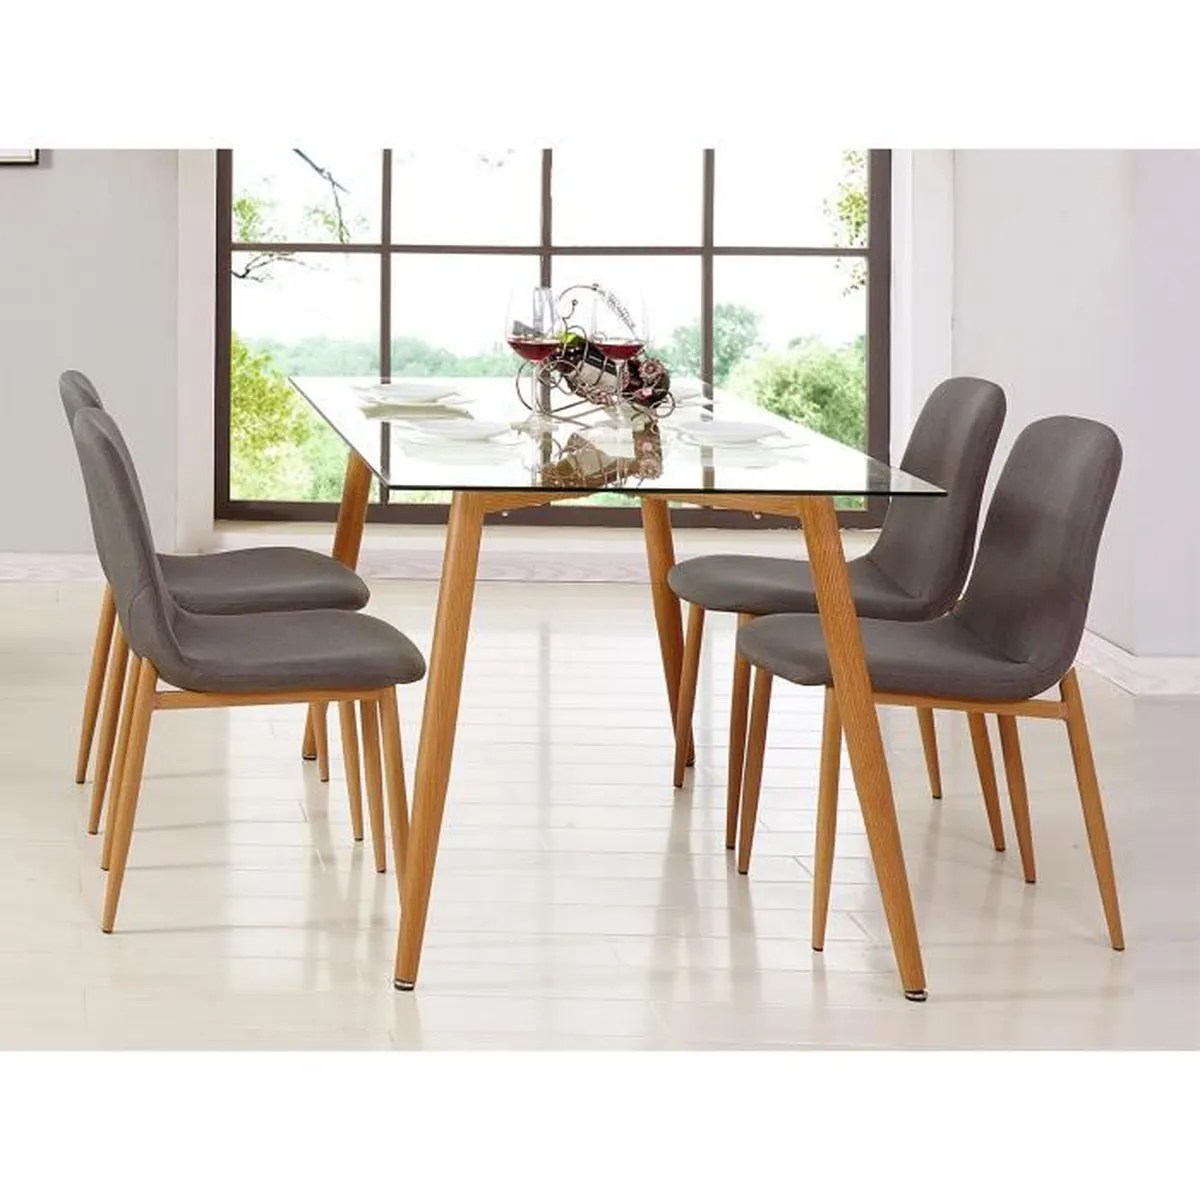 Meubles Nordi But Table En Verre 4 Chaises Scandinave Nordi